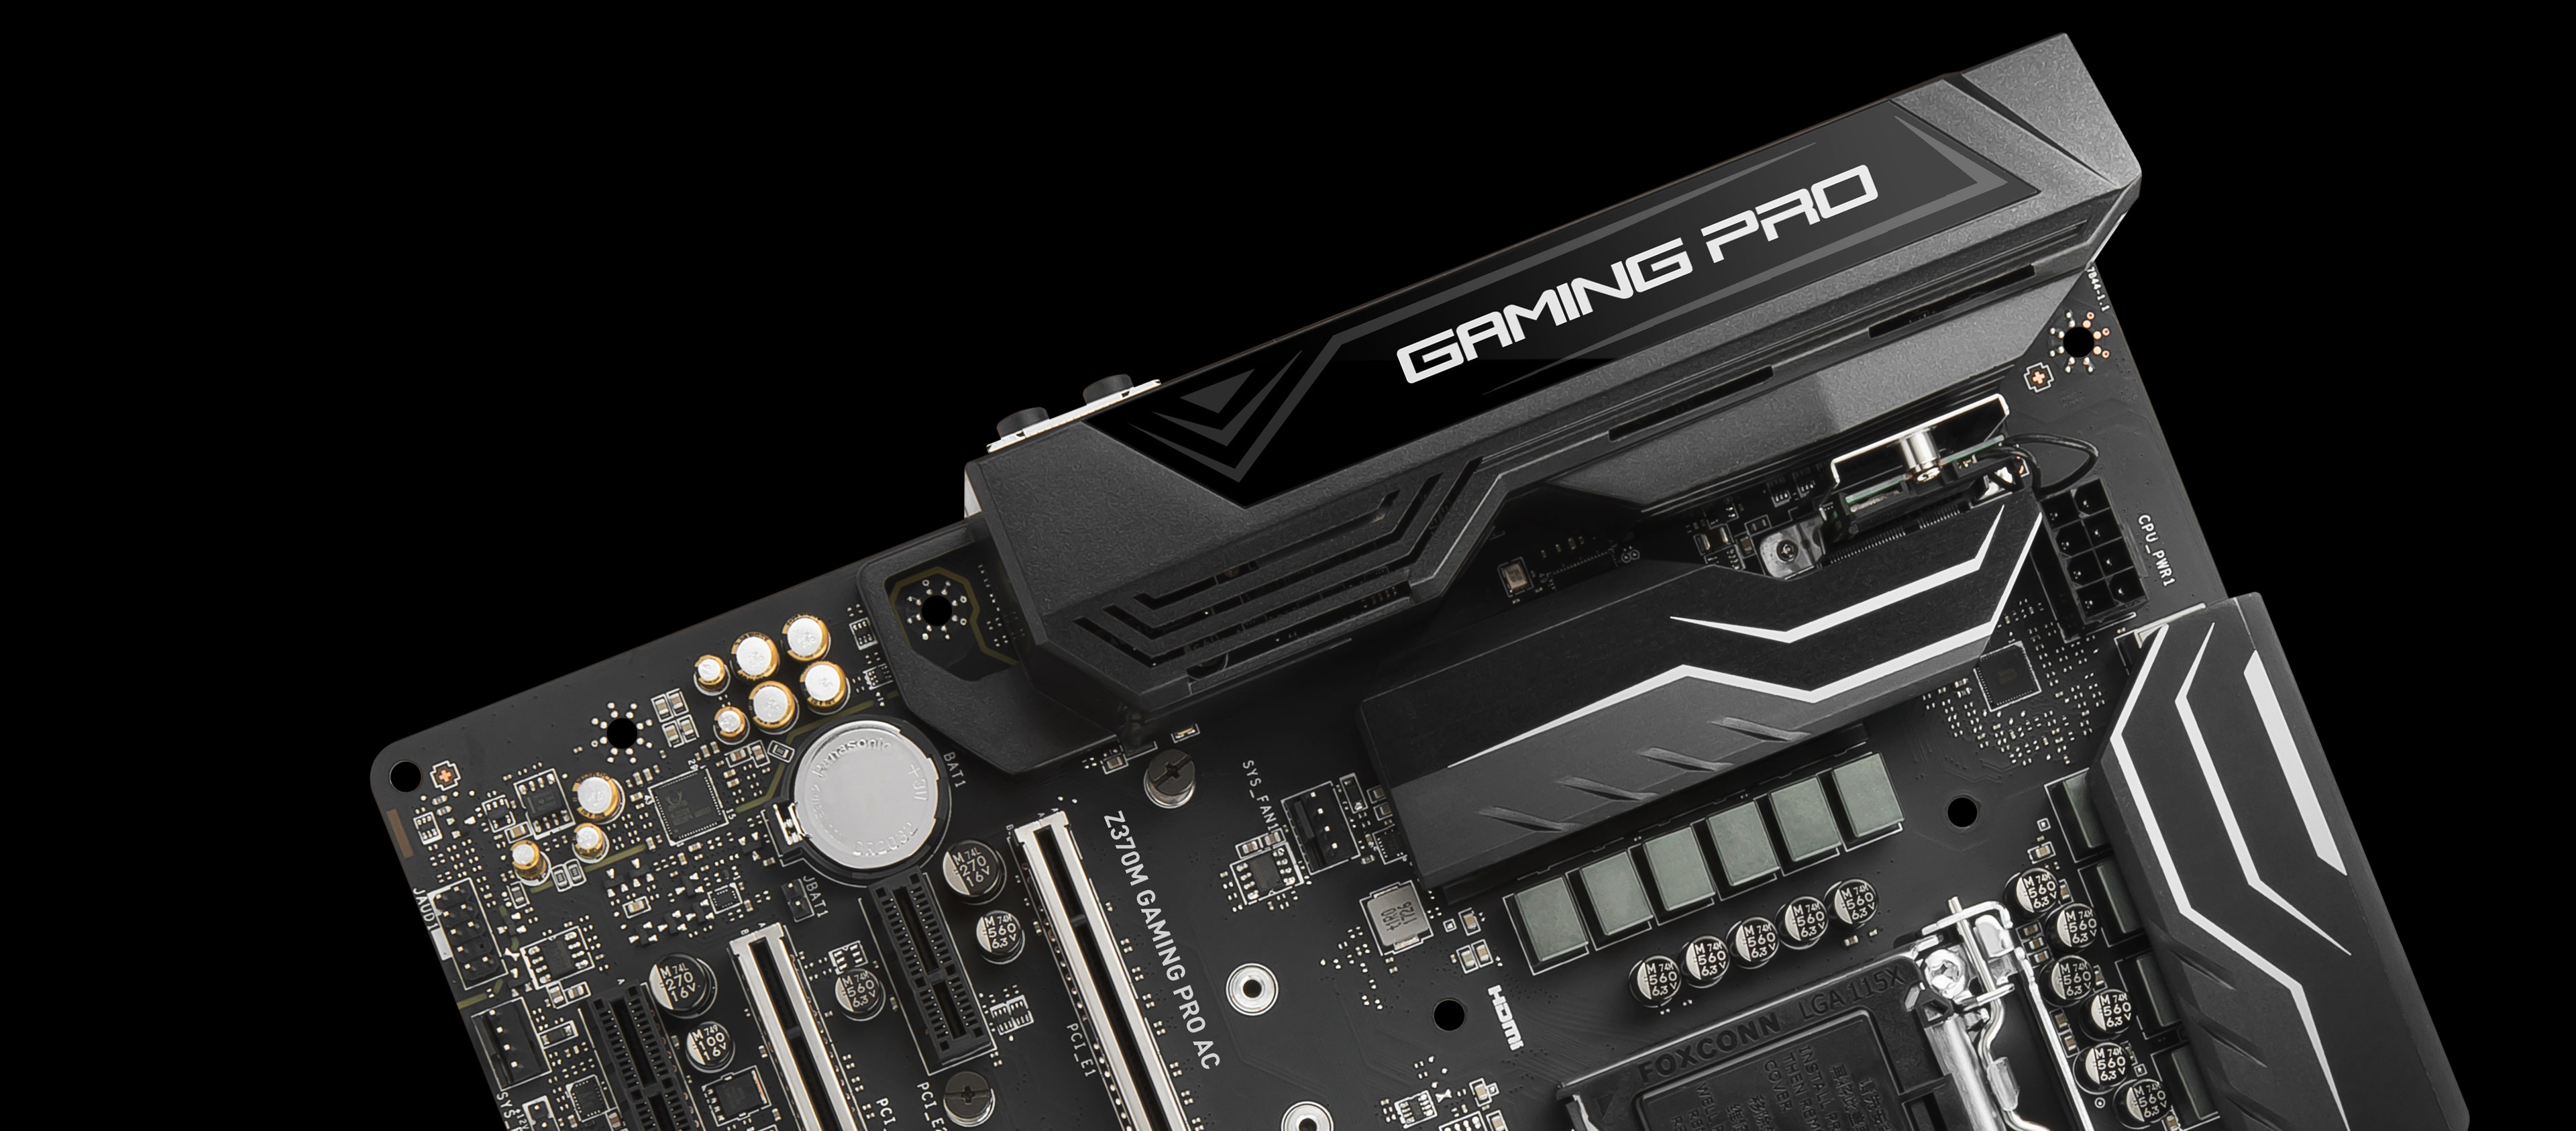 Z370m Gaming Pro Ac Motherboard The World Leader In Cpu Components Diagram Free Image About Wiring And Schematic Using Only Finest Quality Integrating Latest Technological Innovations Delivers Best Possible Professional Experience